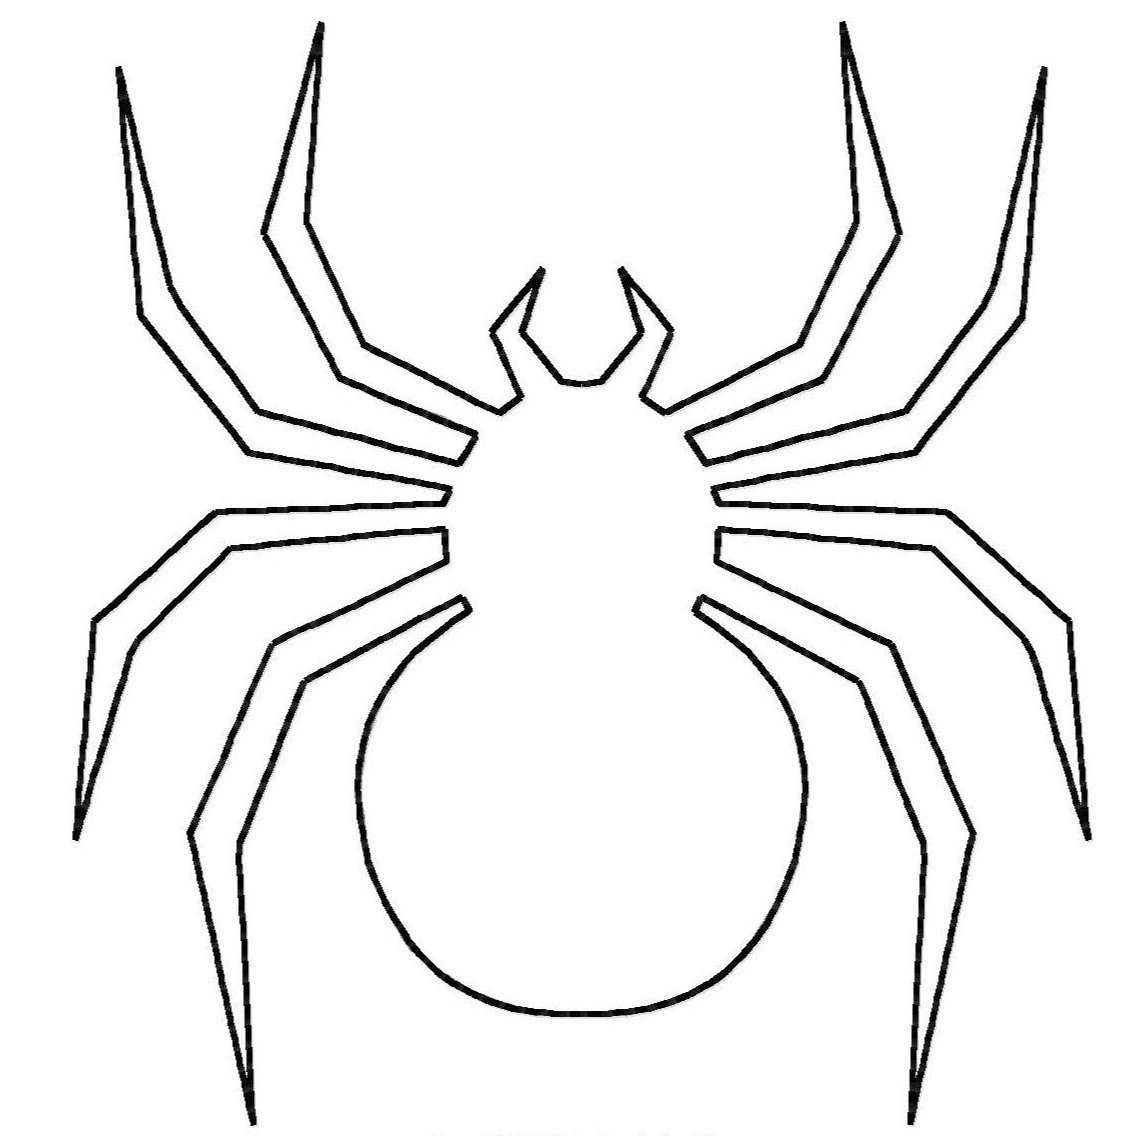 1146x1146 Coloring Pages Spiders Coloring Pages Black Widow Page Spiders